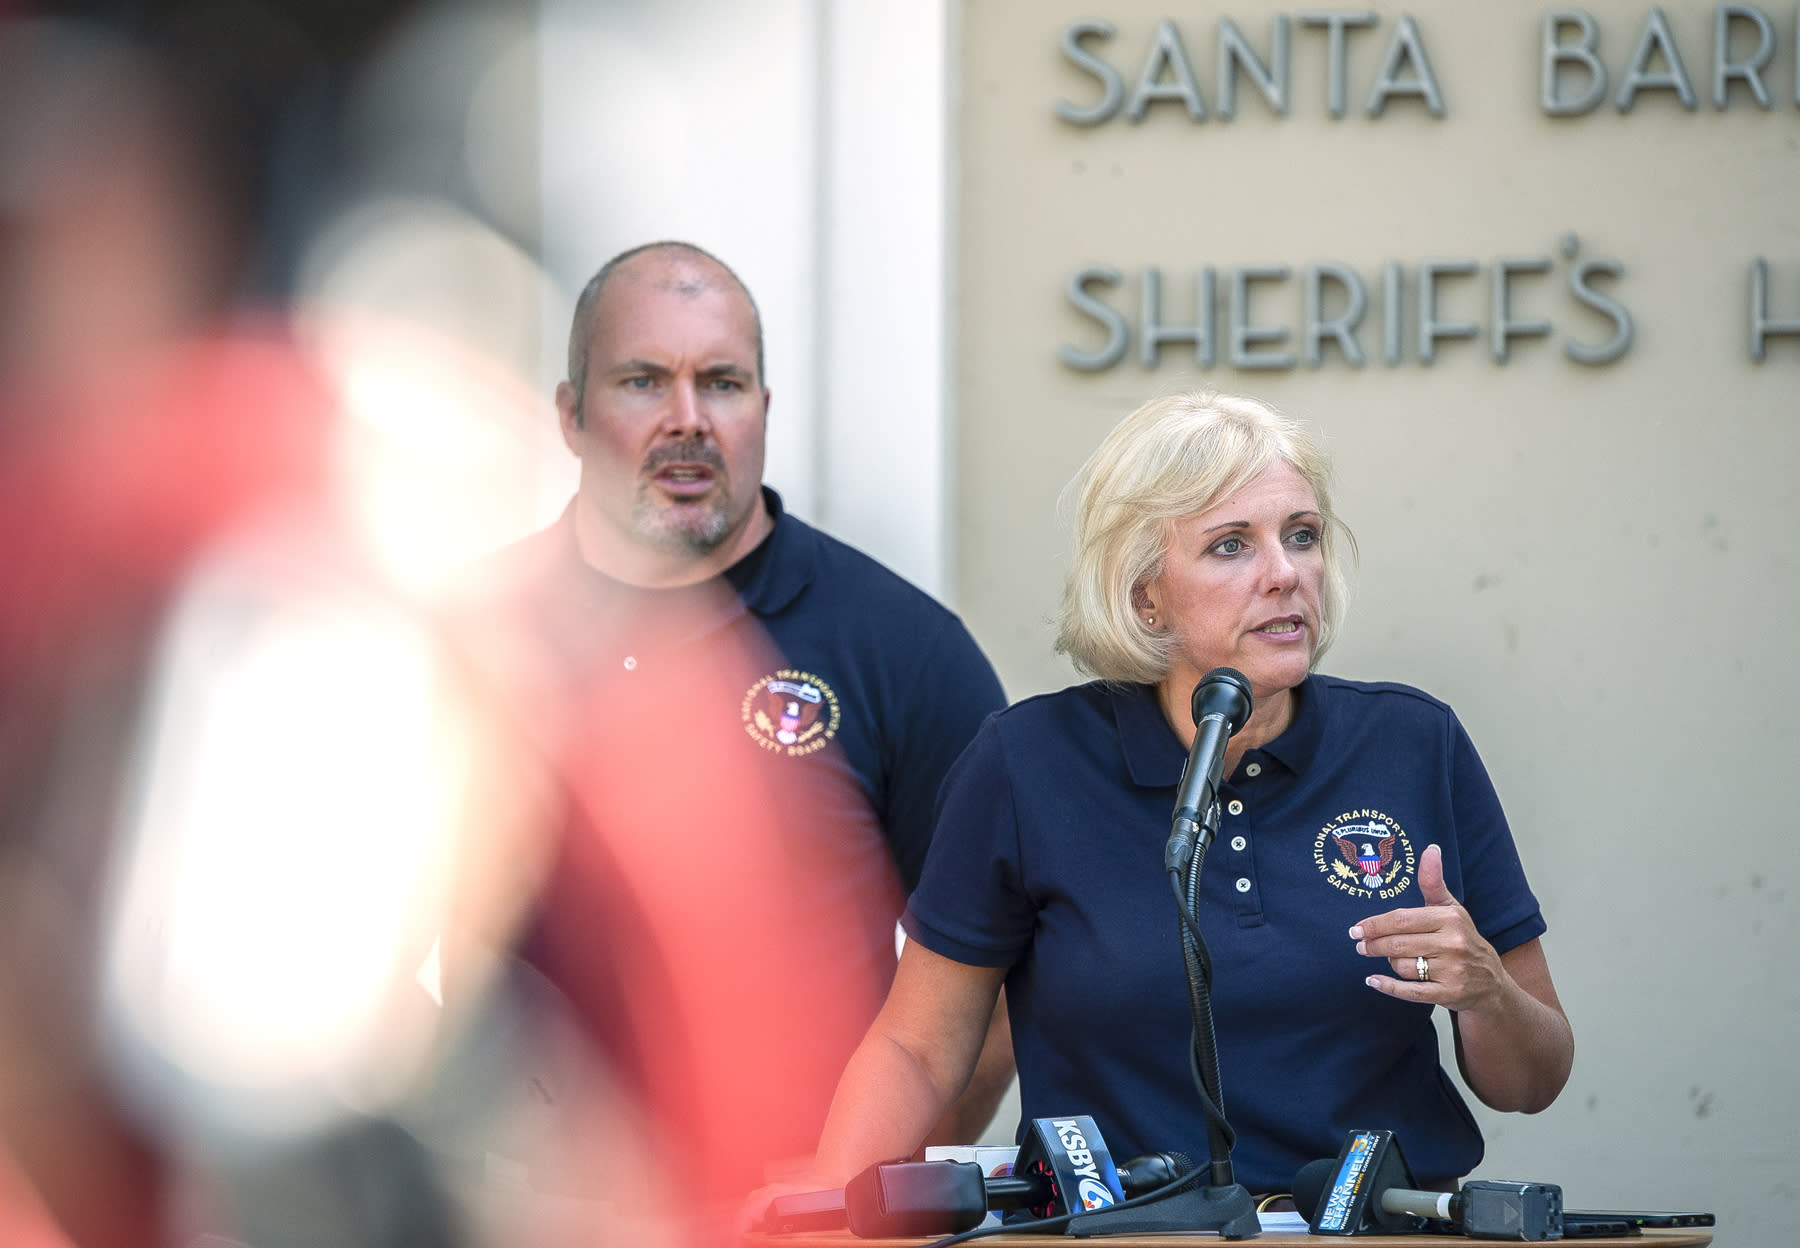 National Transportation Safety Board (NTSB) member Jennifer Homendi, left, with NTSB Investigator-in-charge, Adam Tucker, speaks at a news conference in Santa Barbara, Calif., Tuesday, Sept. 3, 2019. Homendi discussed the ongoing investigation of how the Conception diving boat became engulfed in flames and killed dozens on board. (AP Photo/Christian Monterrosa)